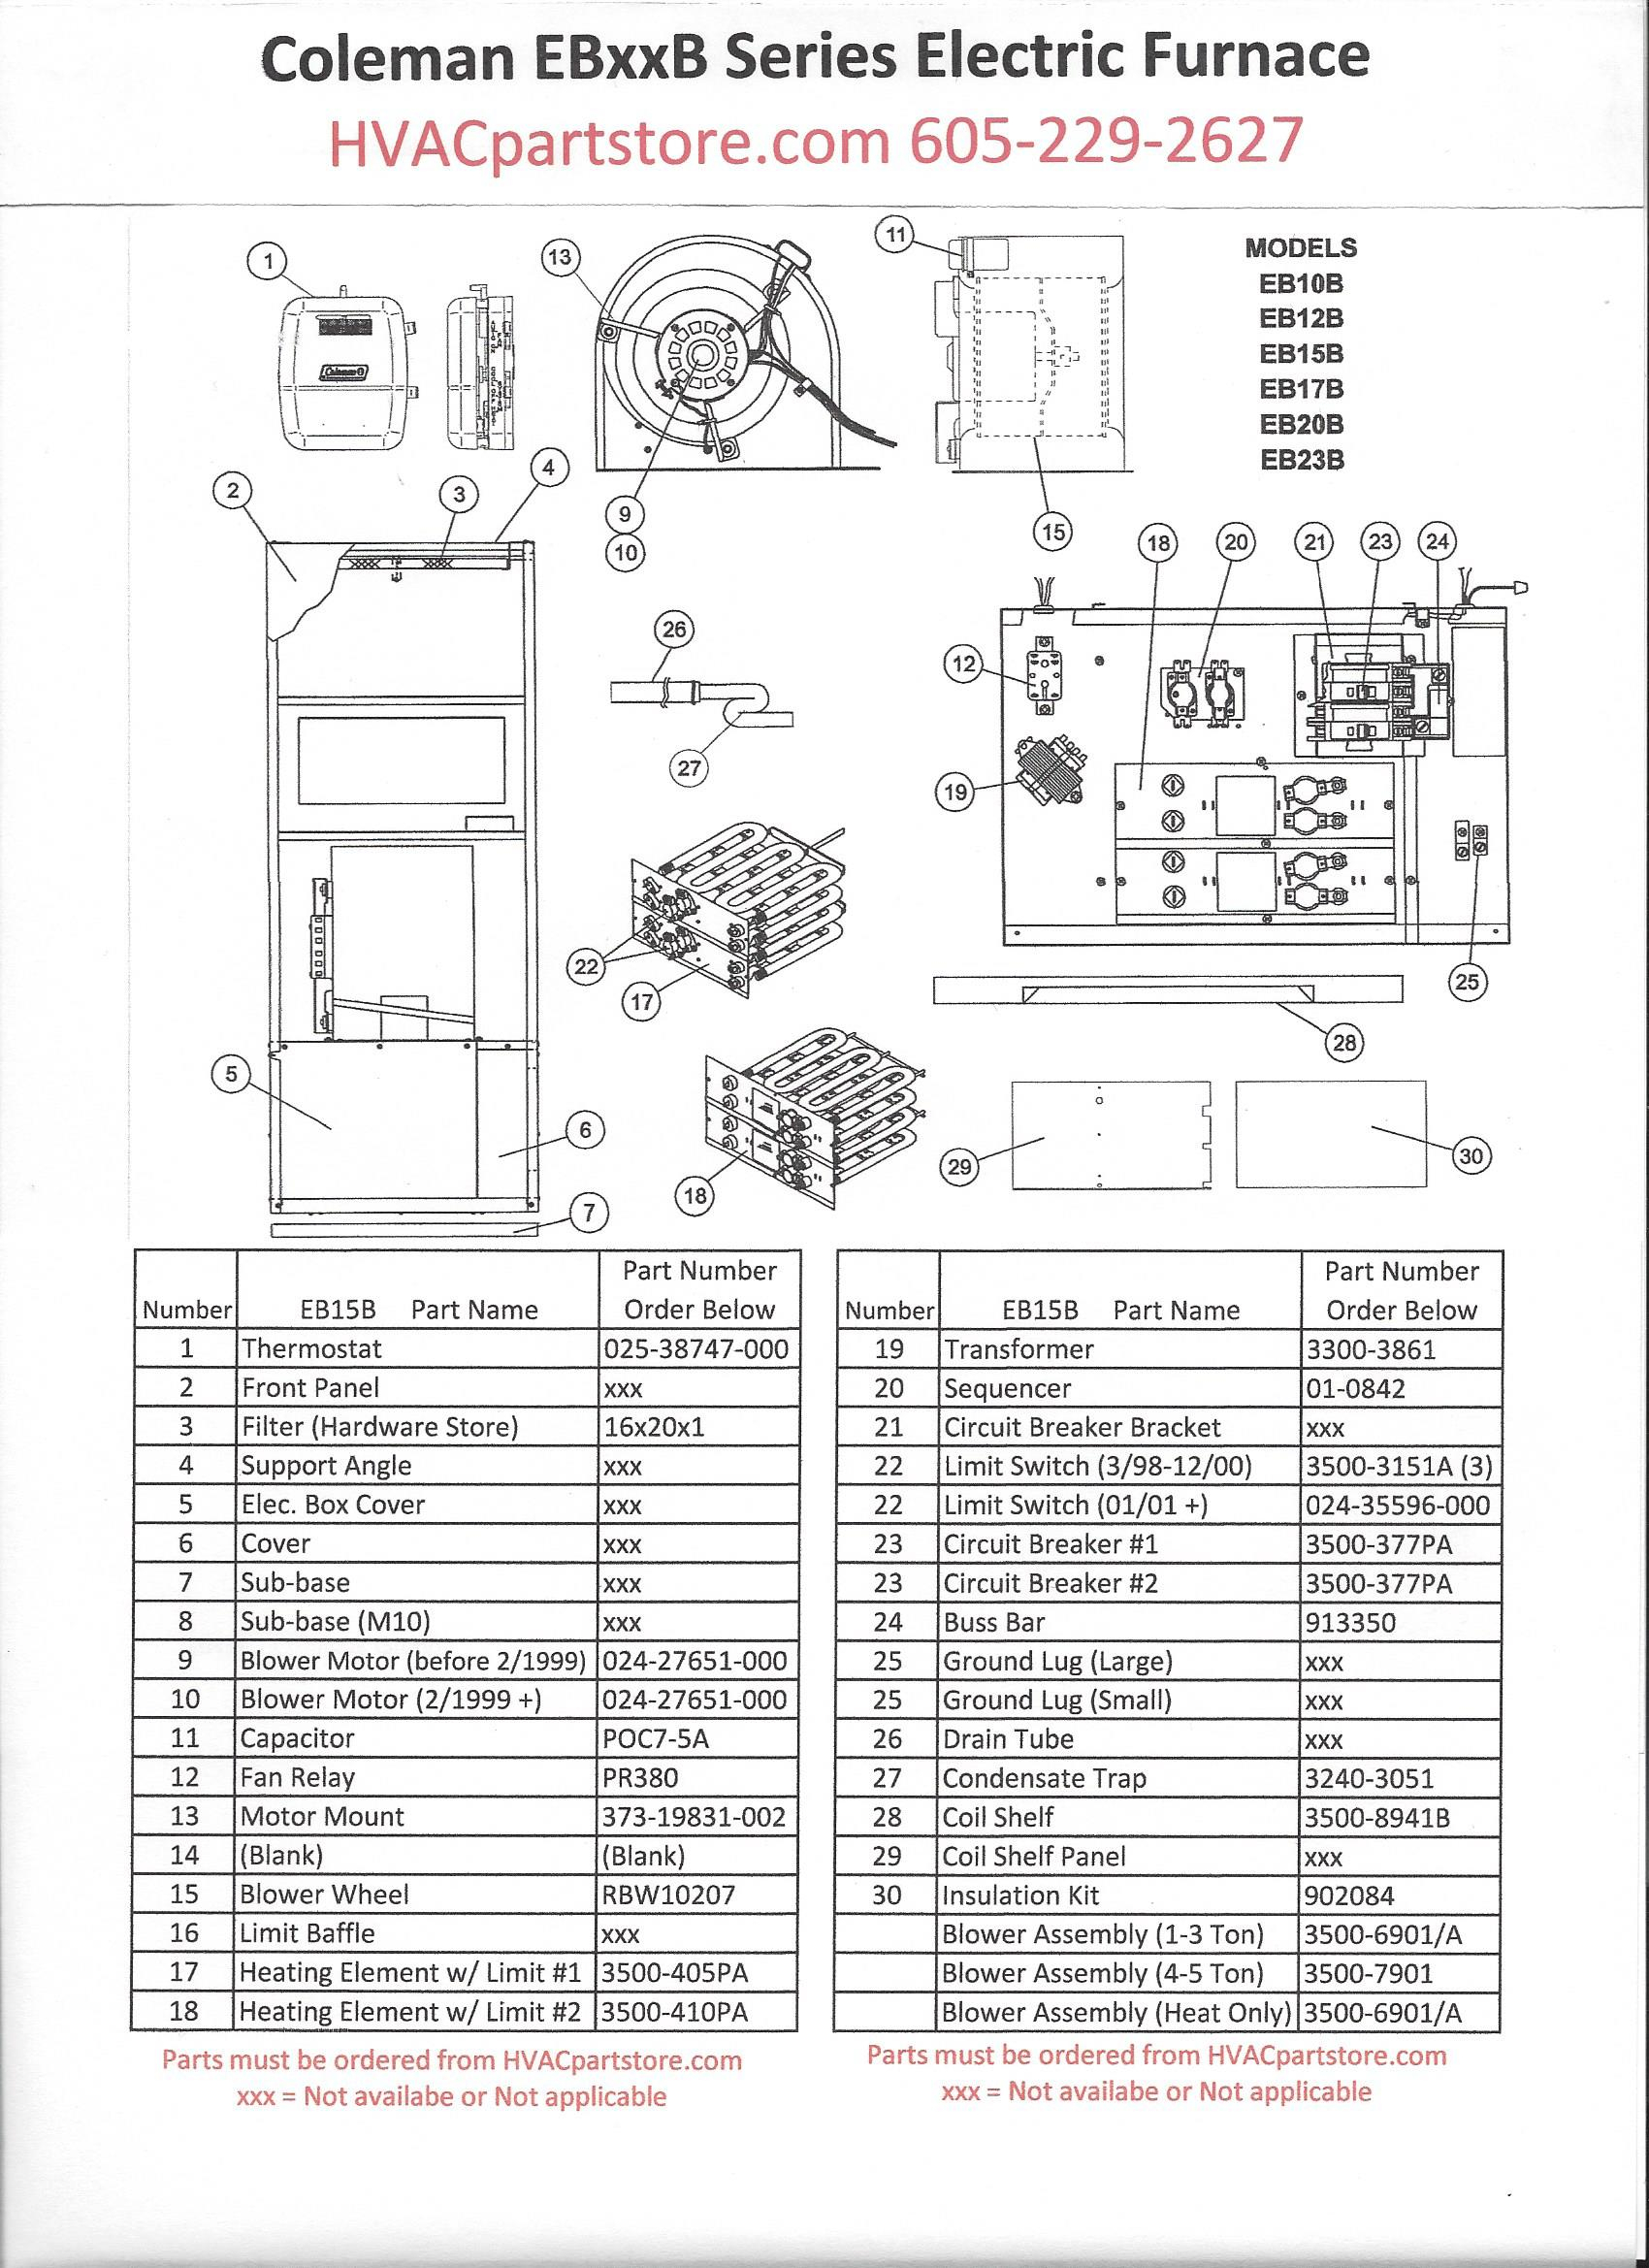 boss v plow wiring diagram download wiring diagram sample boss v plow wheels boss v plow wiring diagram download beautiful intertherm electric furnace wiring diagram 20 for boss